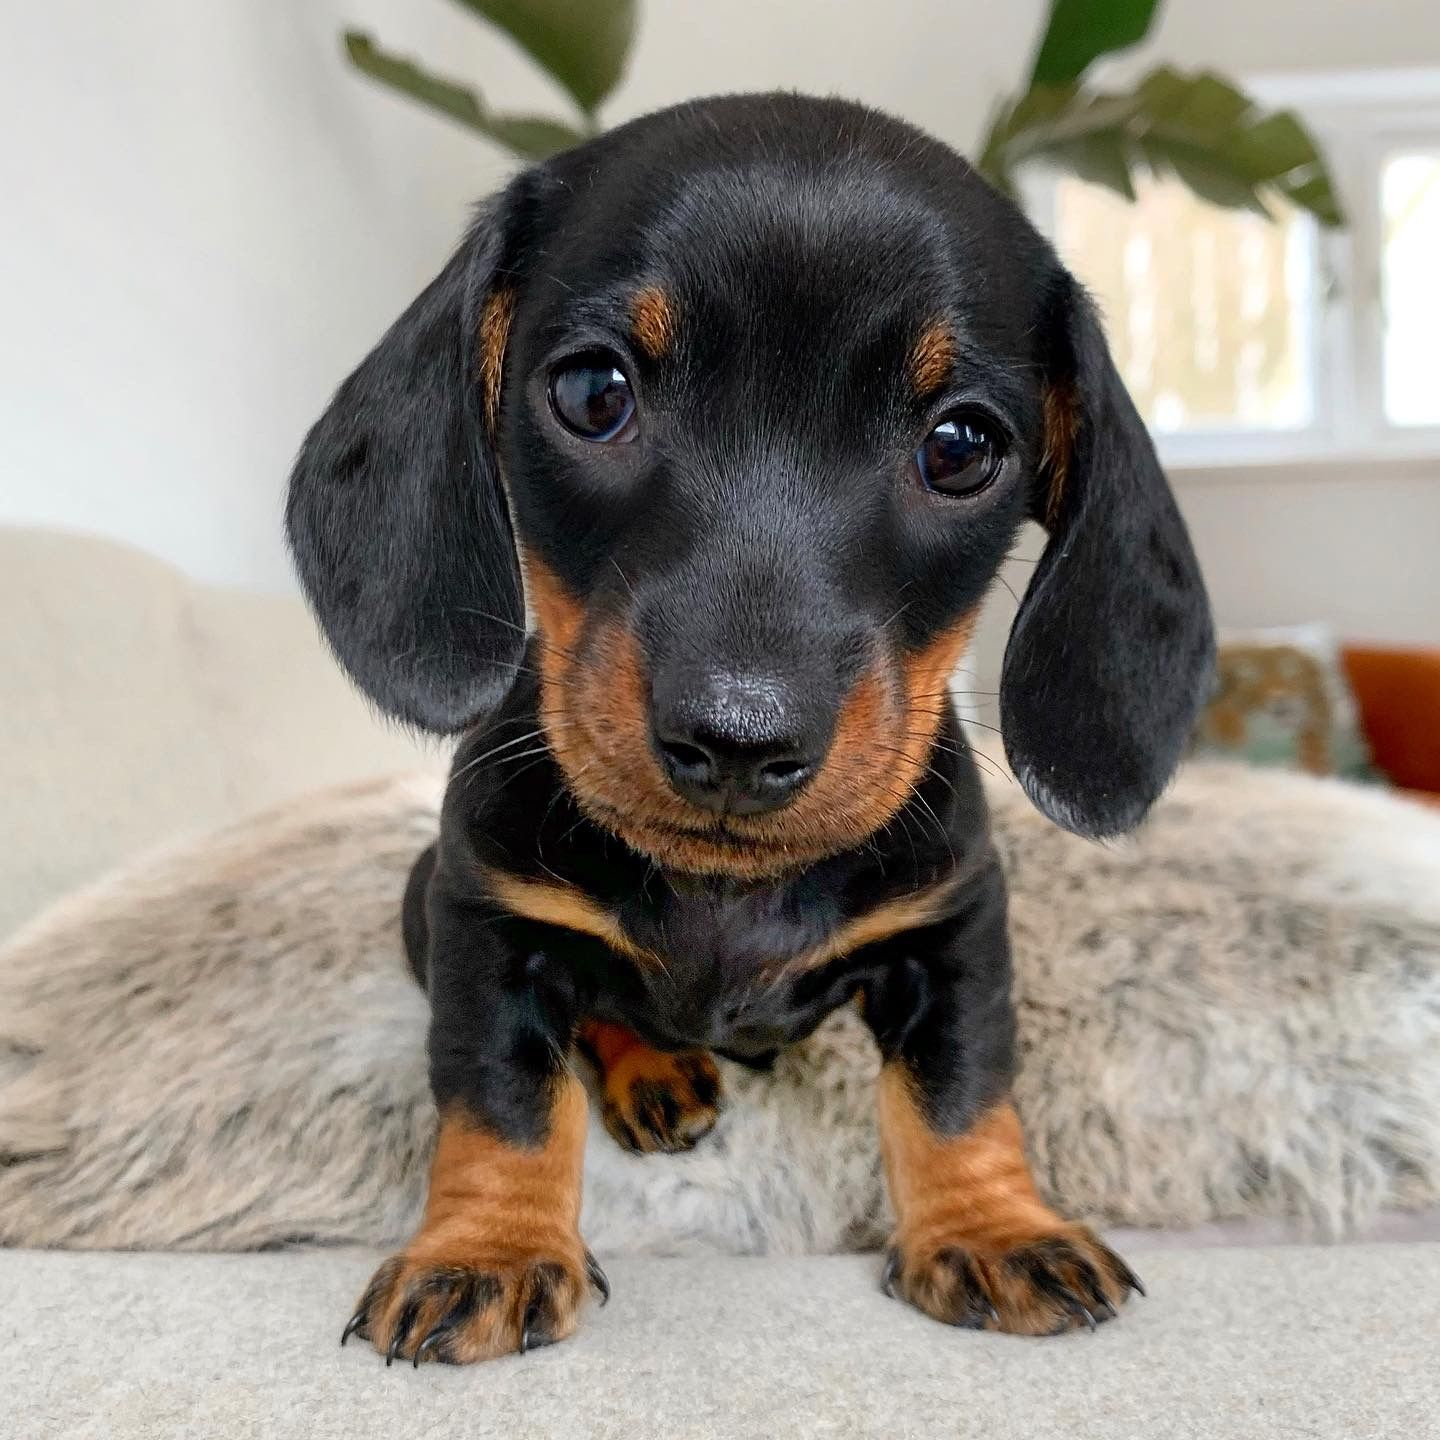 Pin By Lisa J On Dachshunds In 2020 Puppies Dachshund Puppies Cute Little Animals